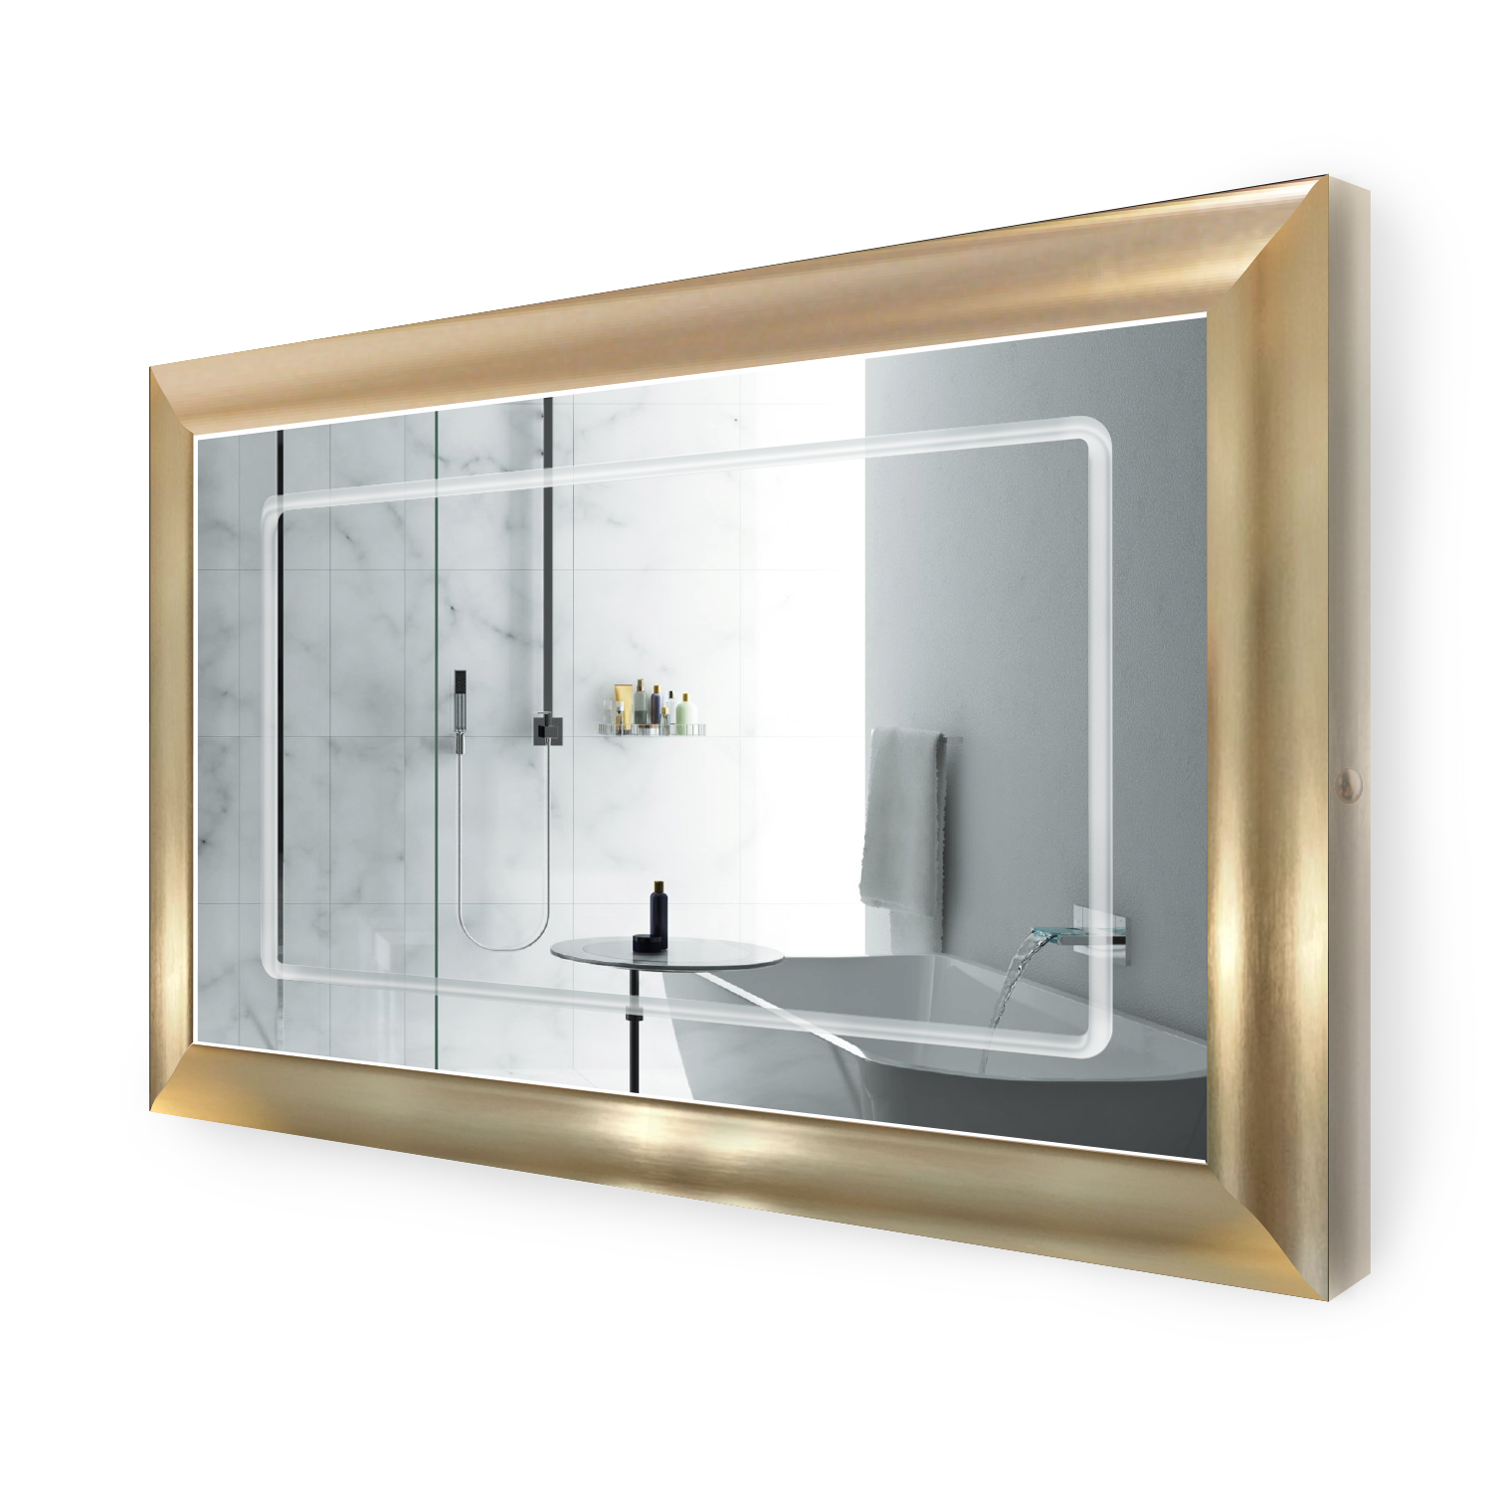 Led Lighted 48 Inch X 30 Inch Bathroom Gold Frame Mirror With Defogger Krugg Reflections Usa